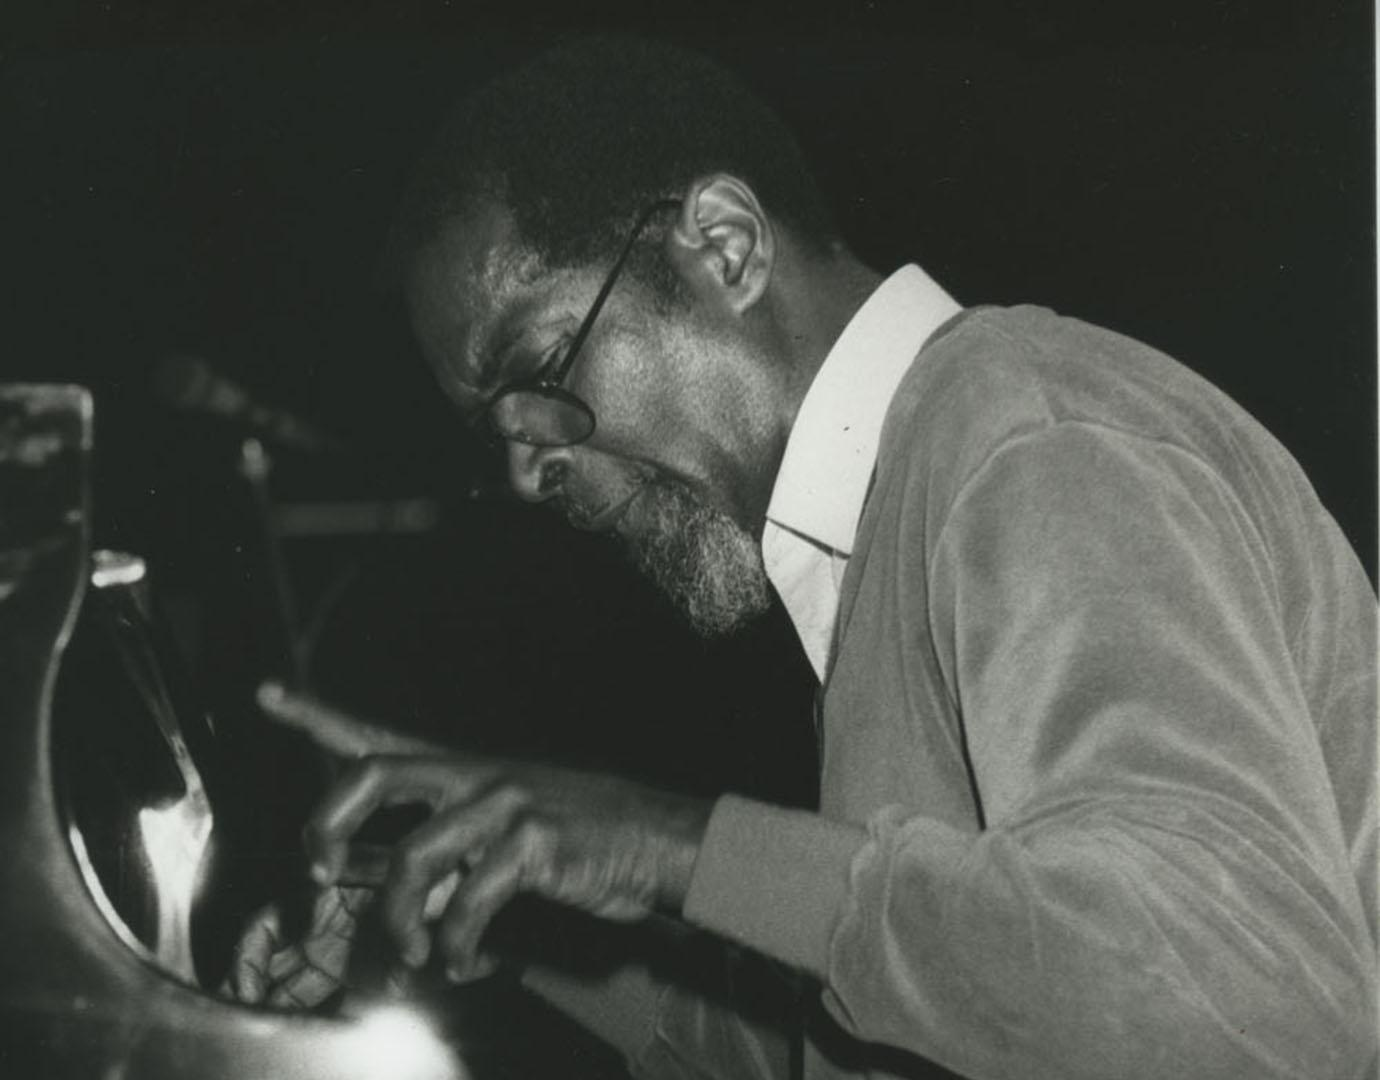 AACM founder Muhal Richard Abrams has died - The Wire